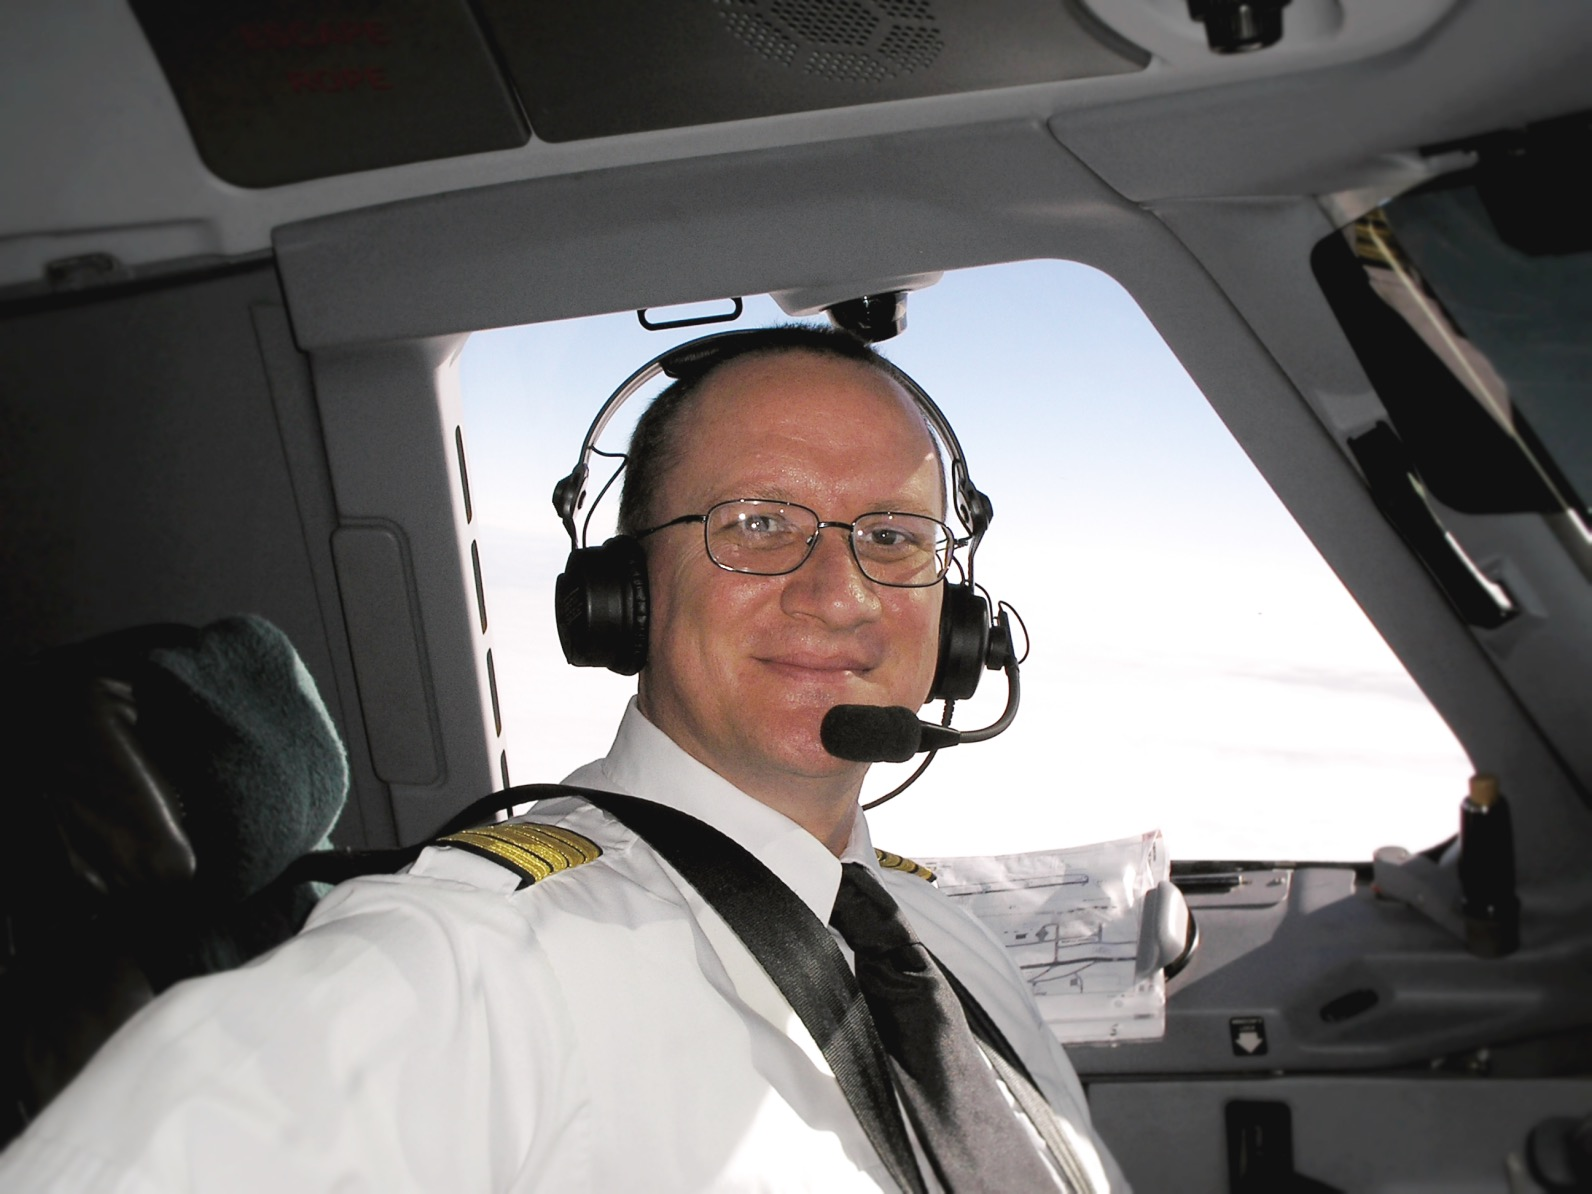 Warren Alford Captain on the Cirrus Airlines ERJ-170